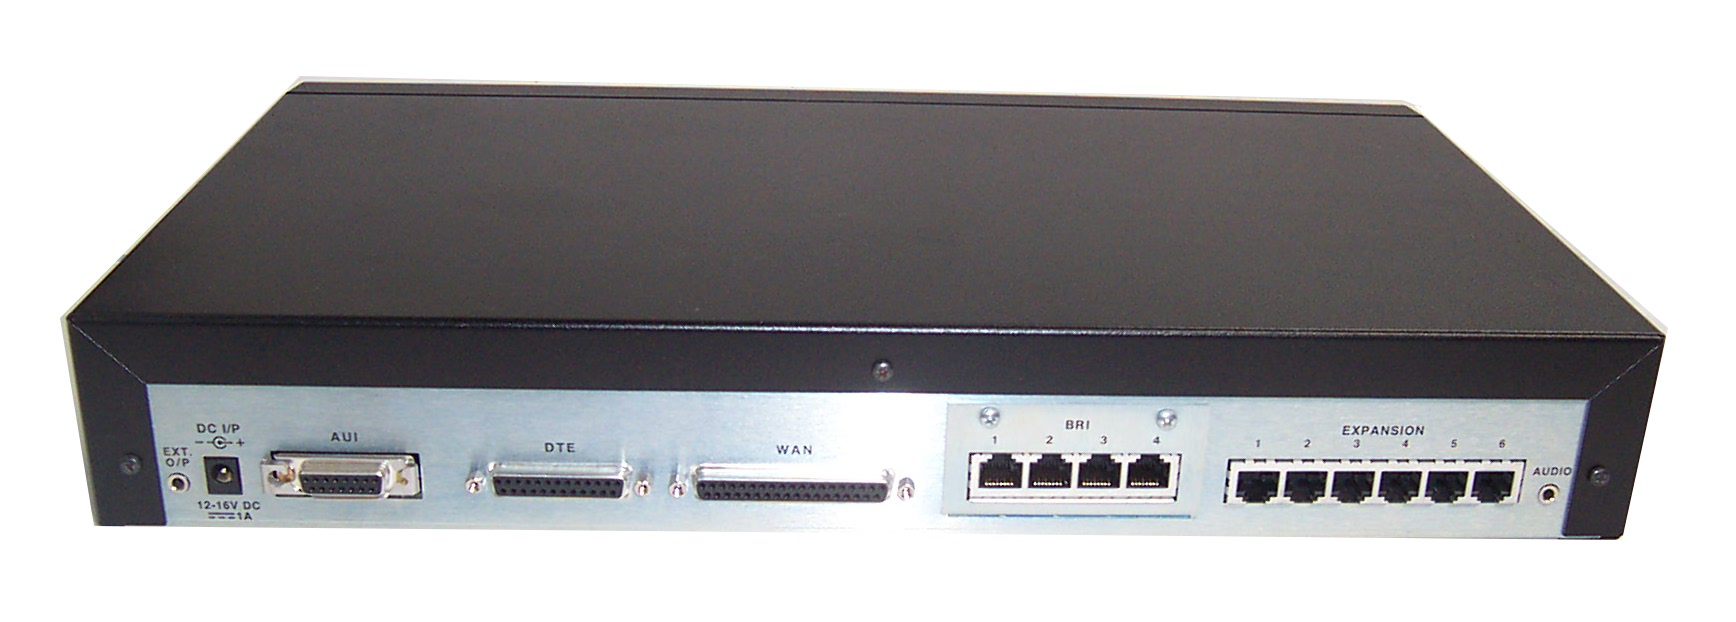 how to close off ports router